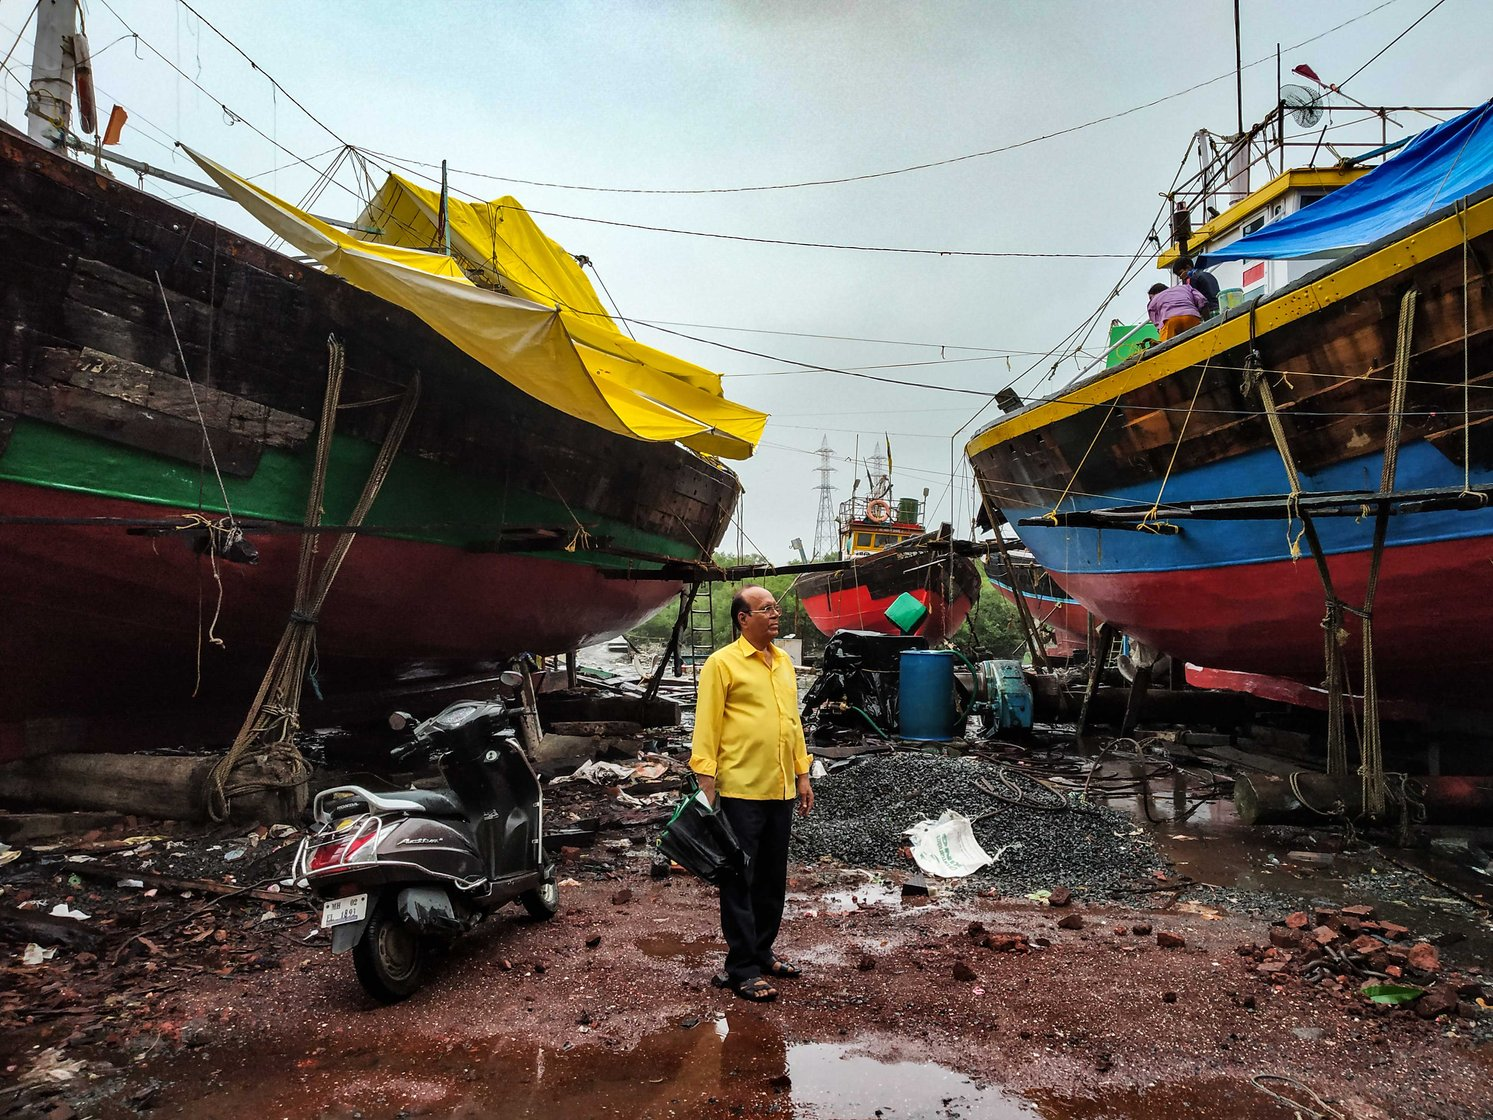 Bhagwan Bhanji in a yard where trawlers are repaired, at the southern end of Versova Koliwada